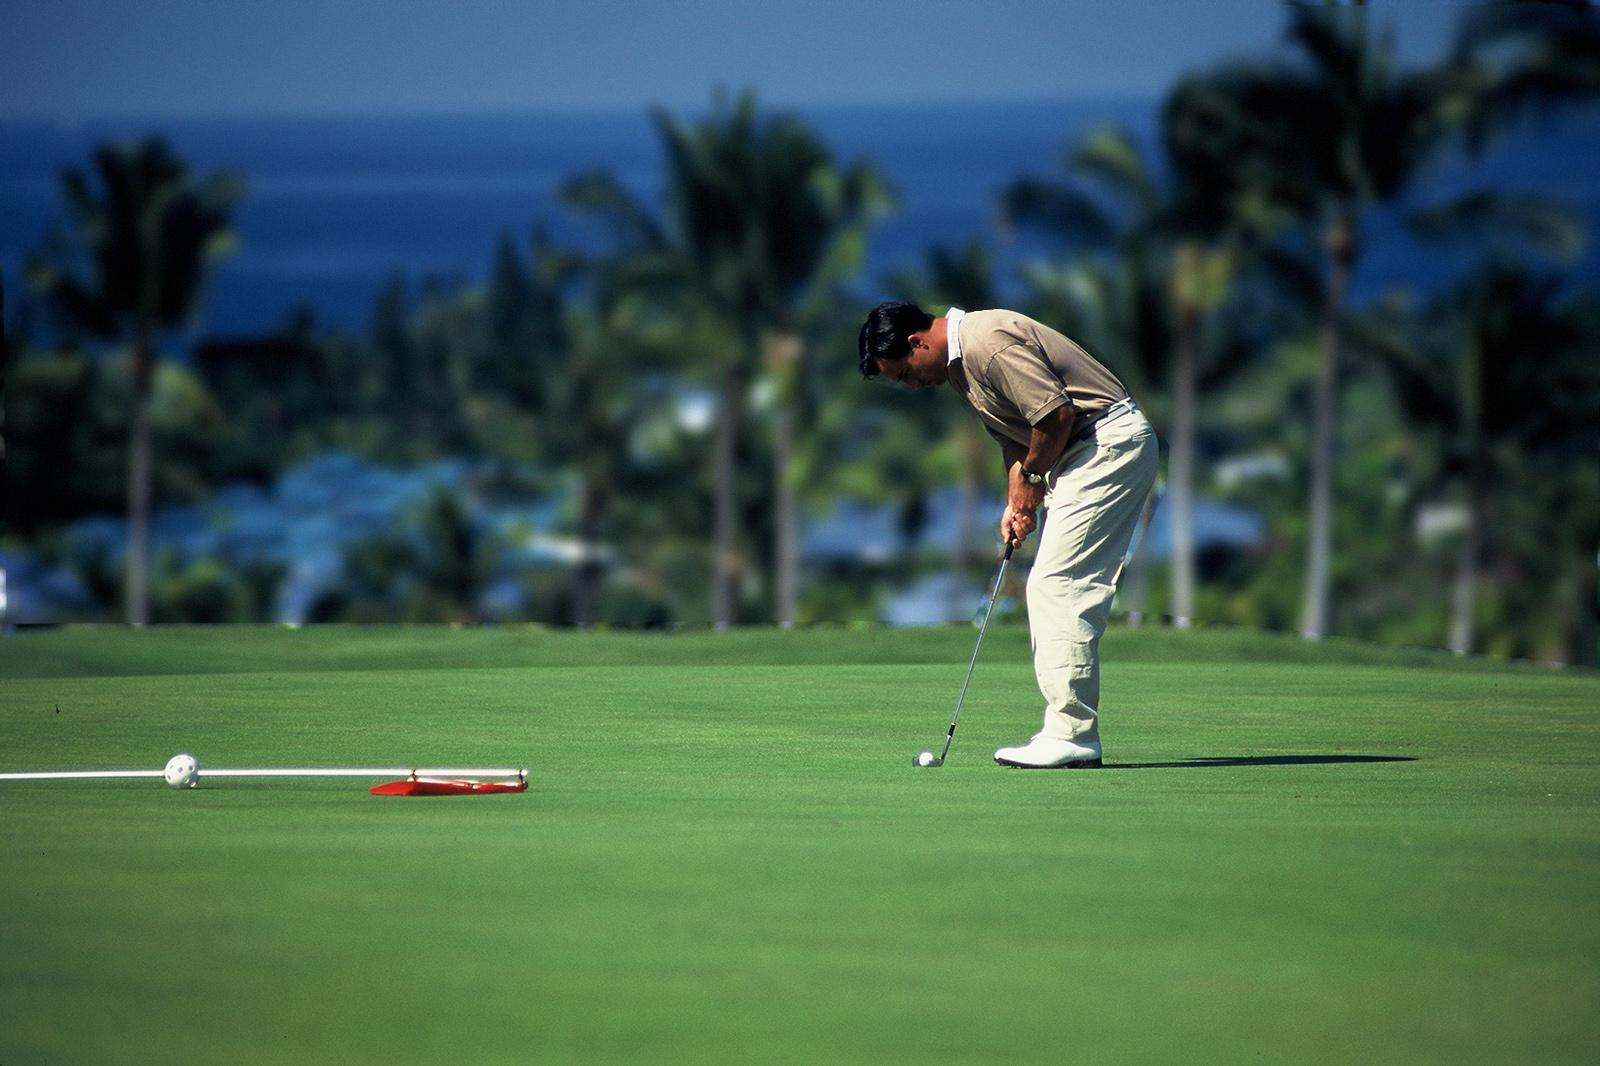 Explaining the Pitch Shot in Golf